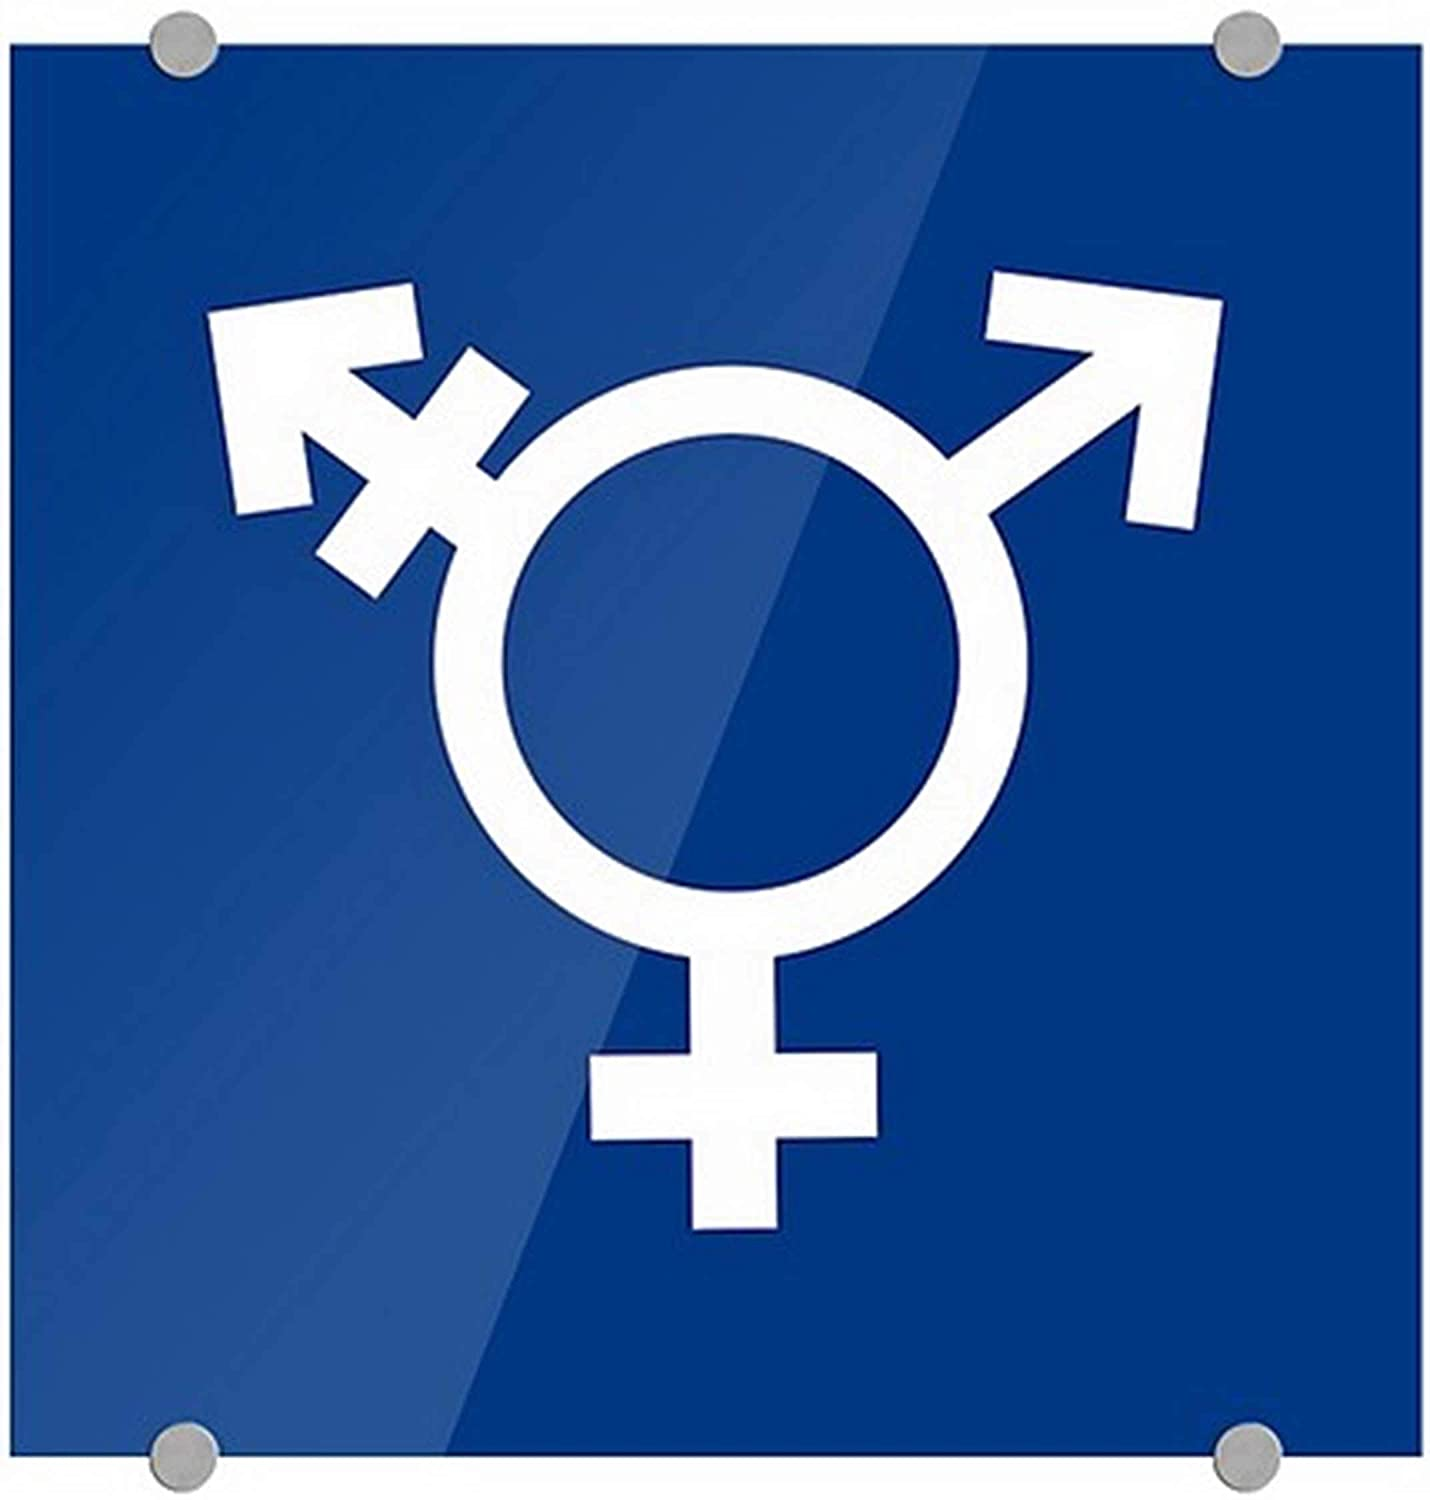 CGSignLab 2439190_5mbsw_16x16_None Transgender Symbol Blue an Free Shipping Cheap Bargain Gift in Free shipping